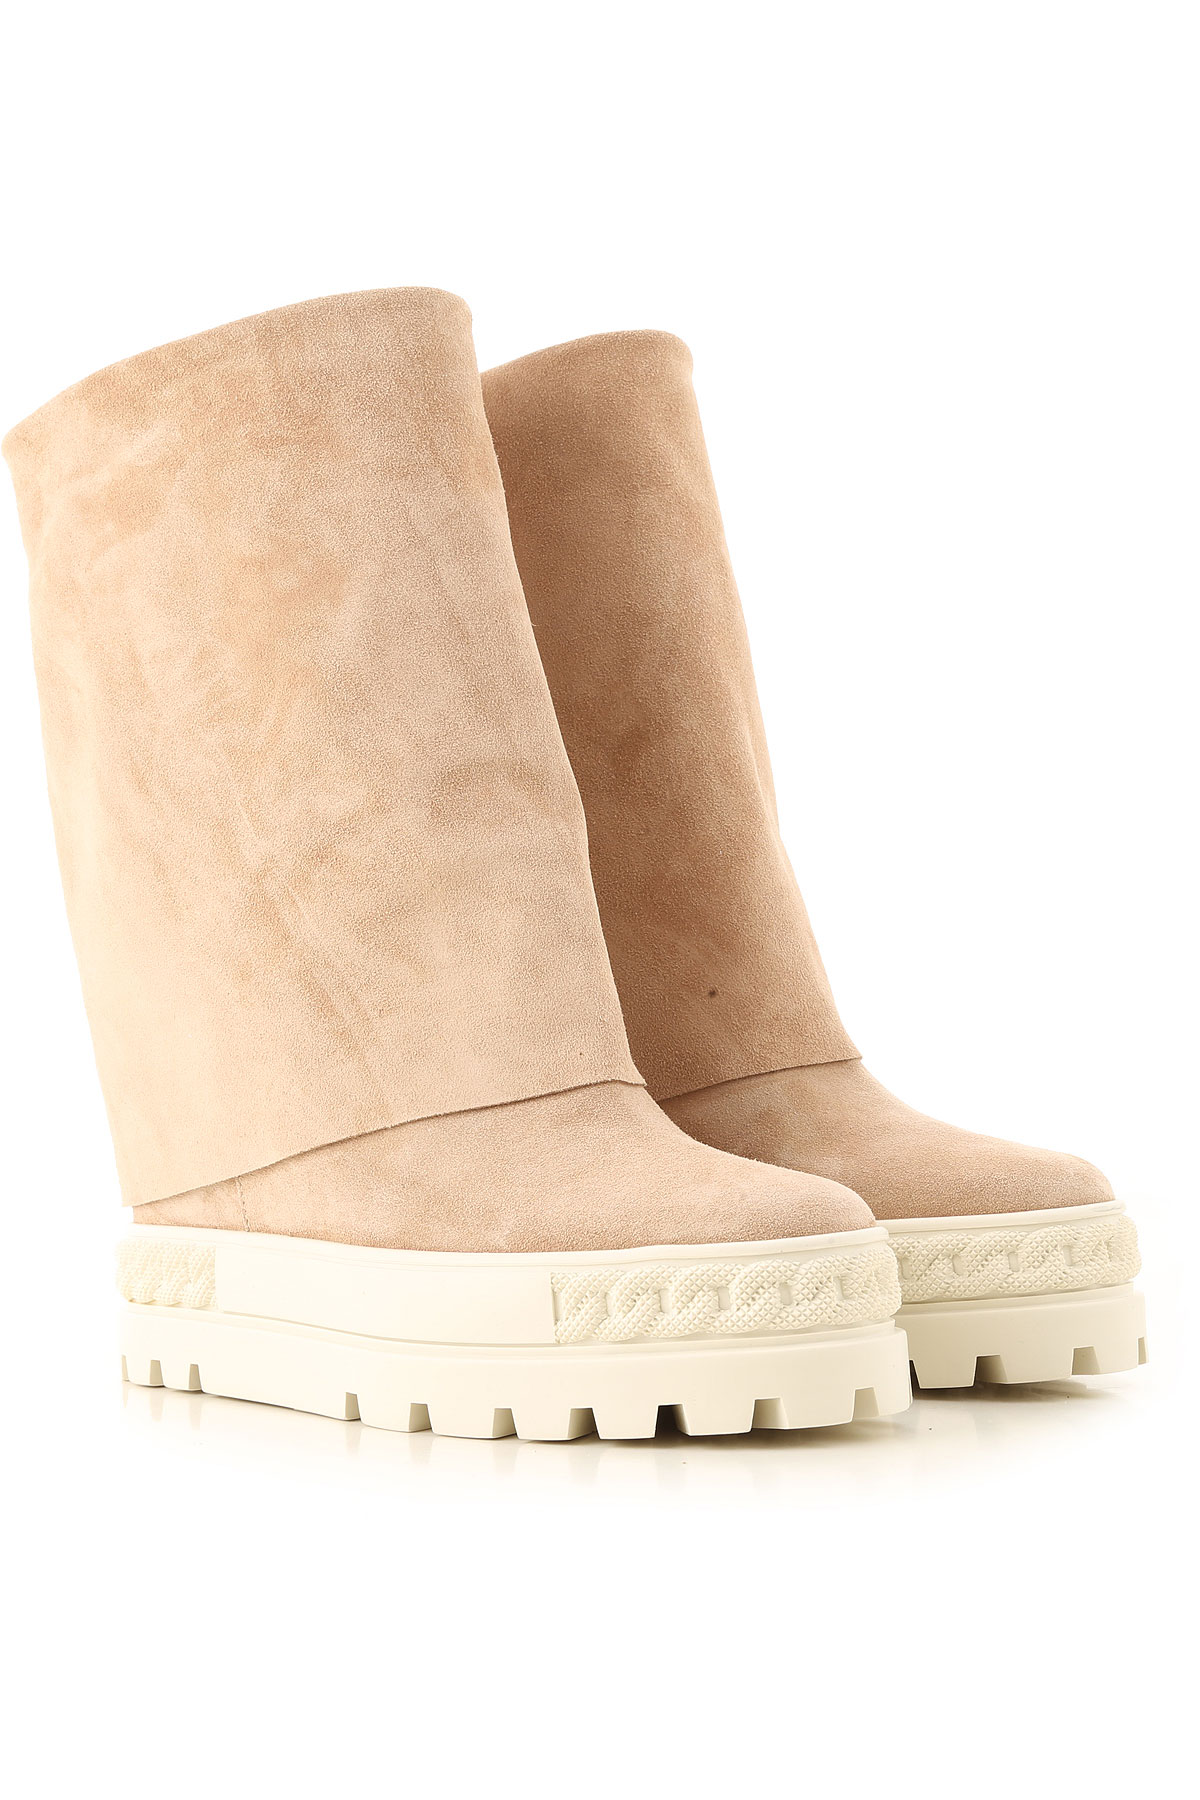 Casadei Boots for Women, Booties On Sale, cappuccino, Suede leather, 2019, 10 7 8 9